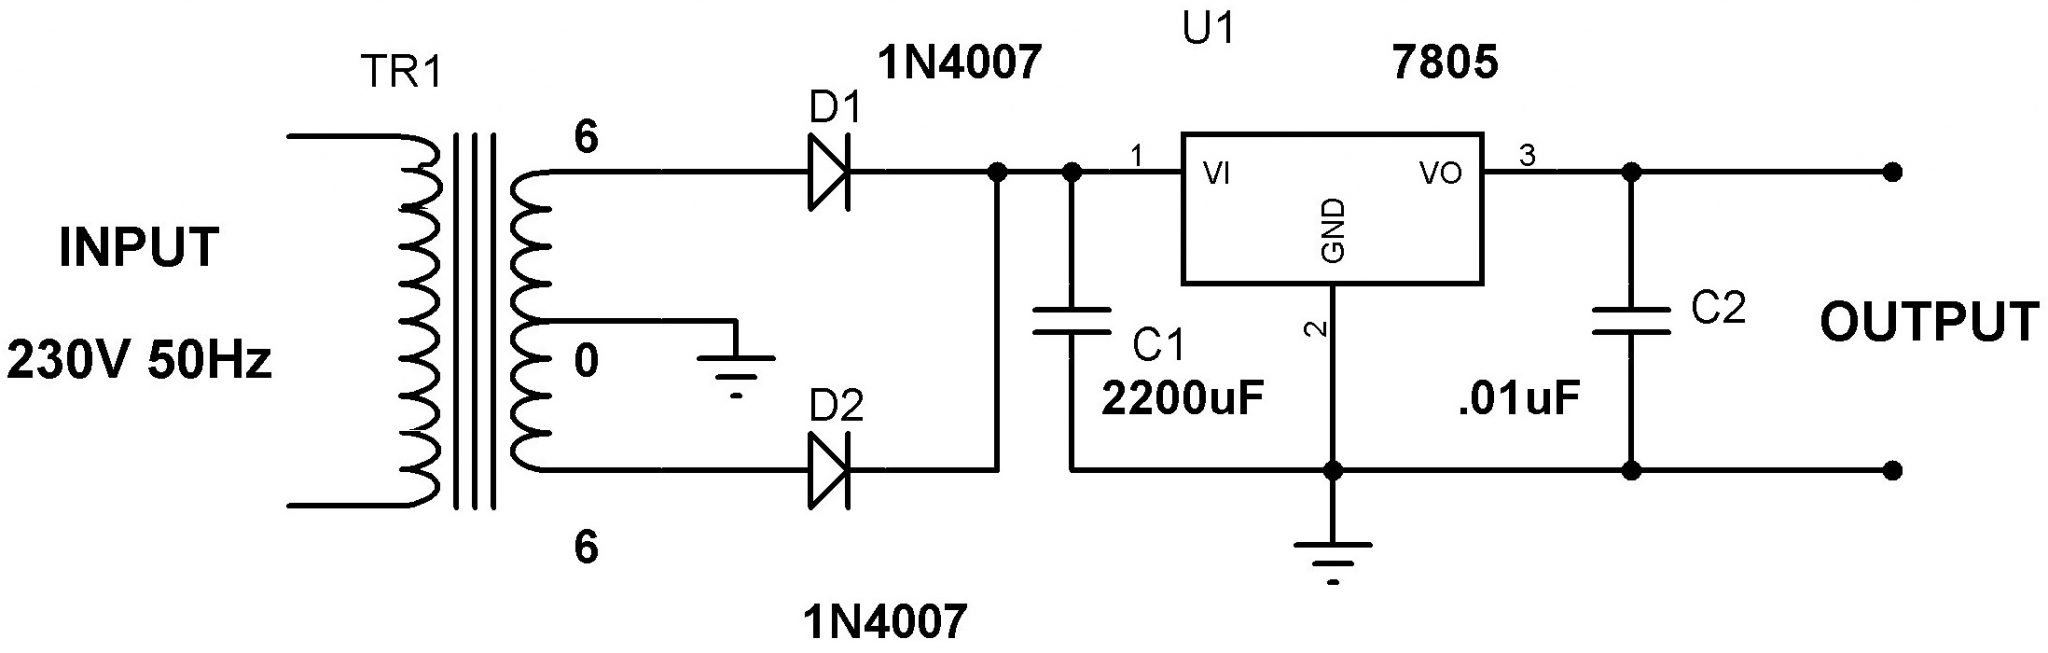 5v Power Supply Using 7805 Voltage Regulator With Design Frequency Modulationfm Amplifiercircuit Circuit Diagram